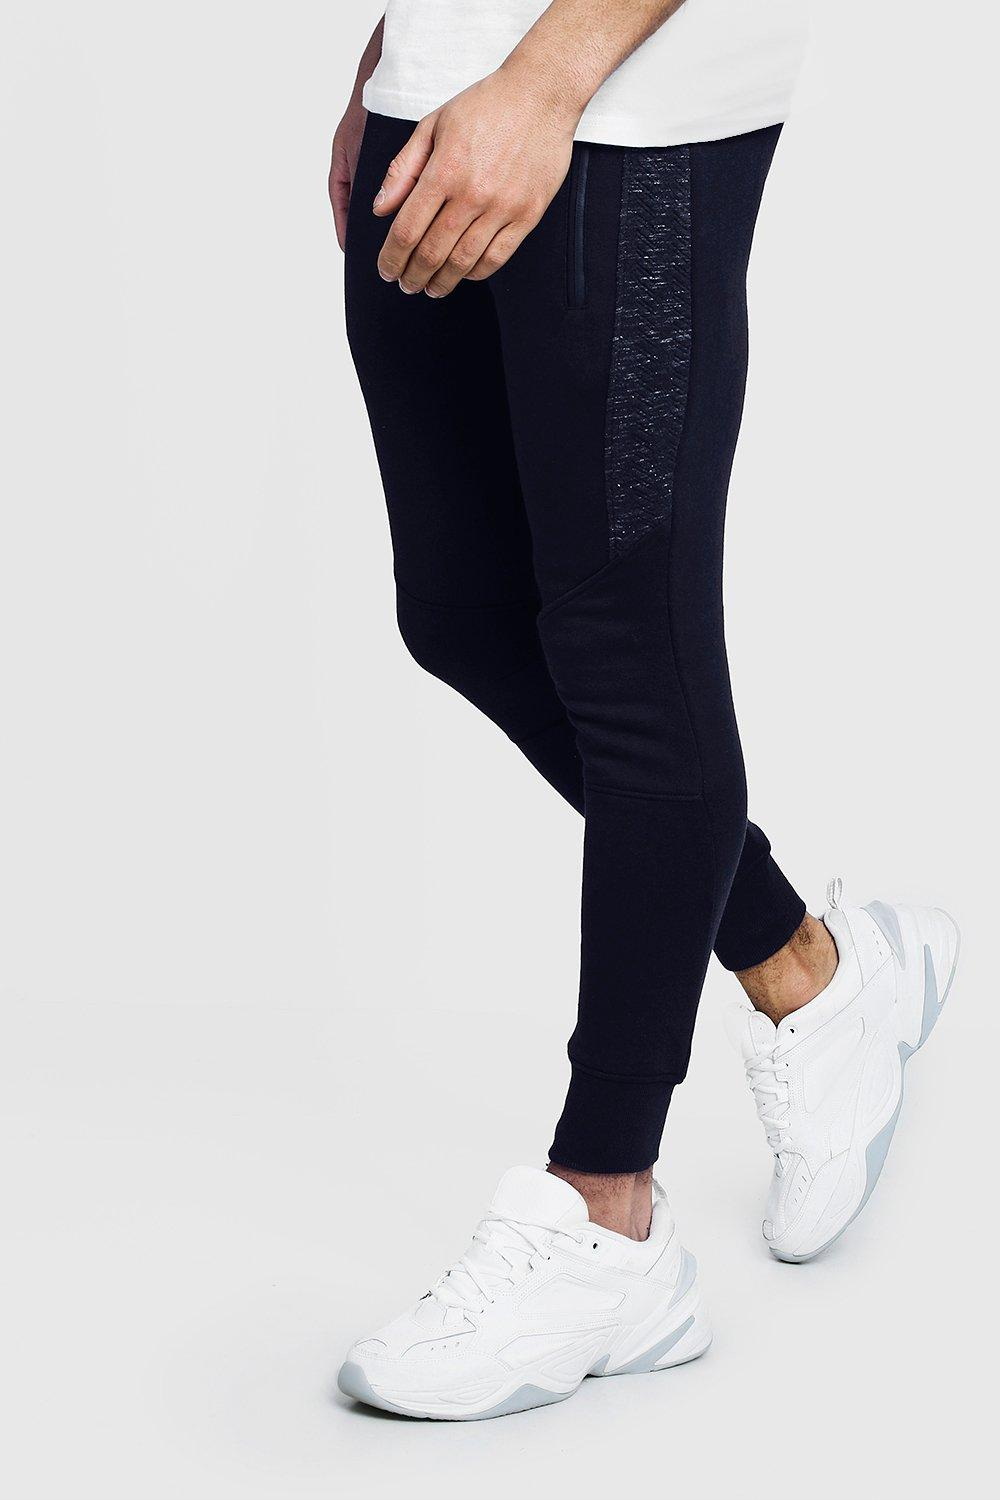 Jogger Sew And Skinny Panelled navy Fit Cut HqnBg